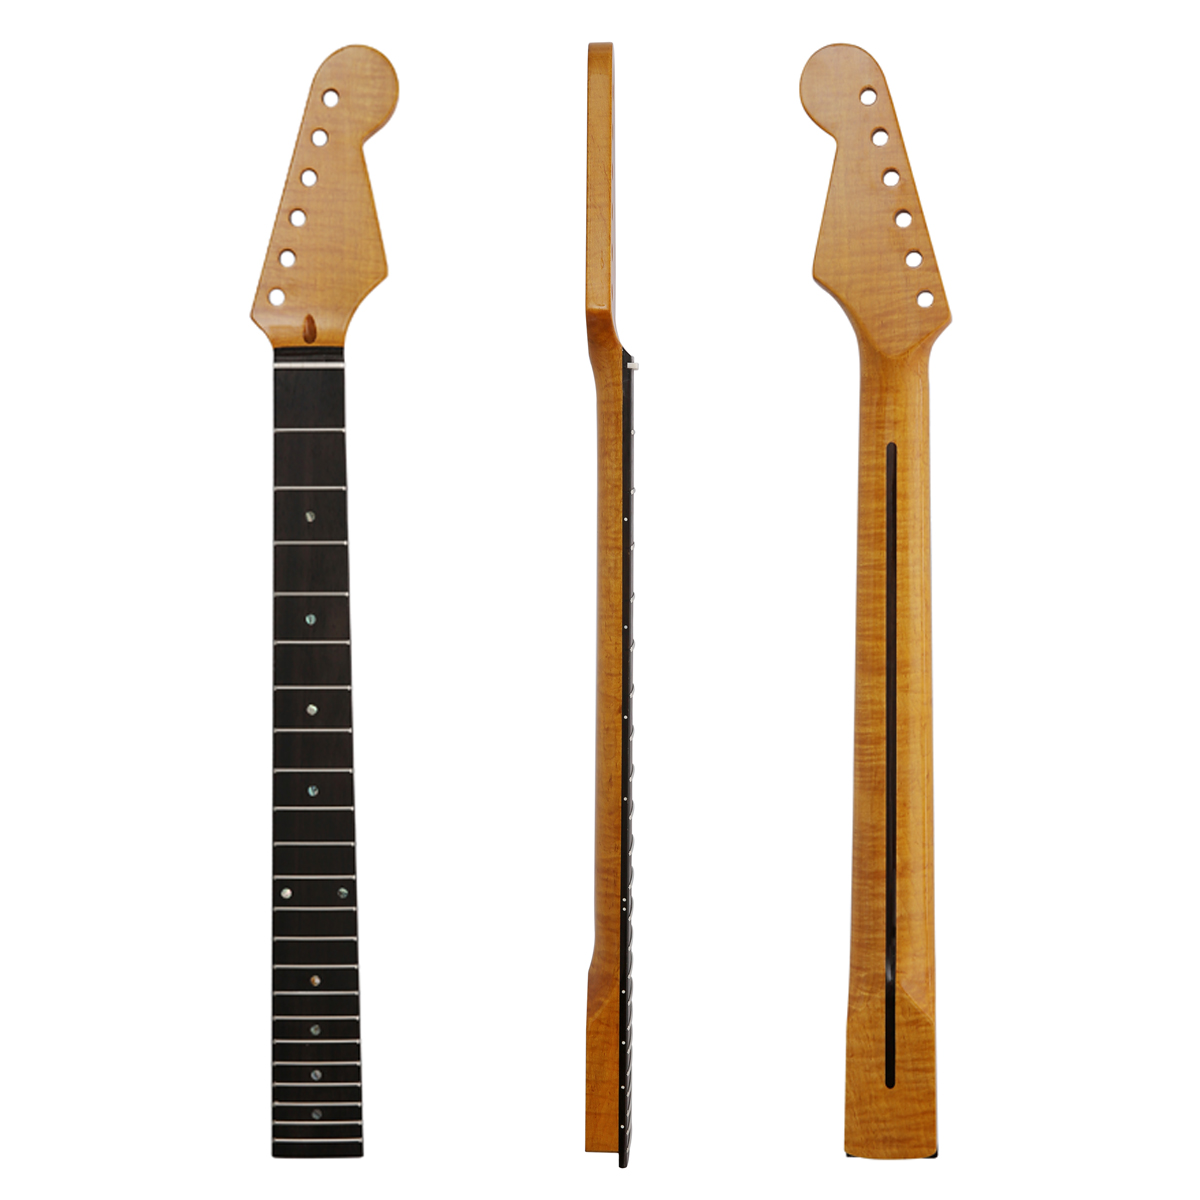 Dopro 22 Fret Canadian Highly Tiger Flamed Maple Strat Neck with Rosewood Fingerboard Abalone Inlay Bone Nut for StratocasterDopro 22 Fret Canadian Highly Tiger Flamed Maple Strat Neck with Rosewood Fingerboard Abalone Inlay Bone Nut for Stratocaster